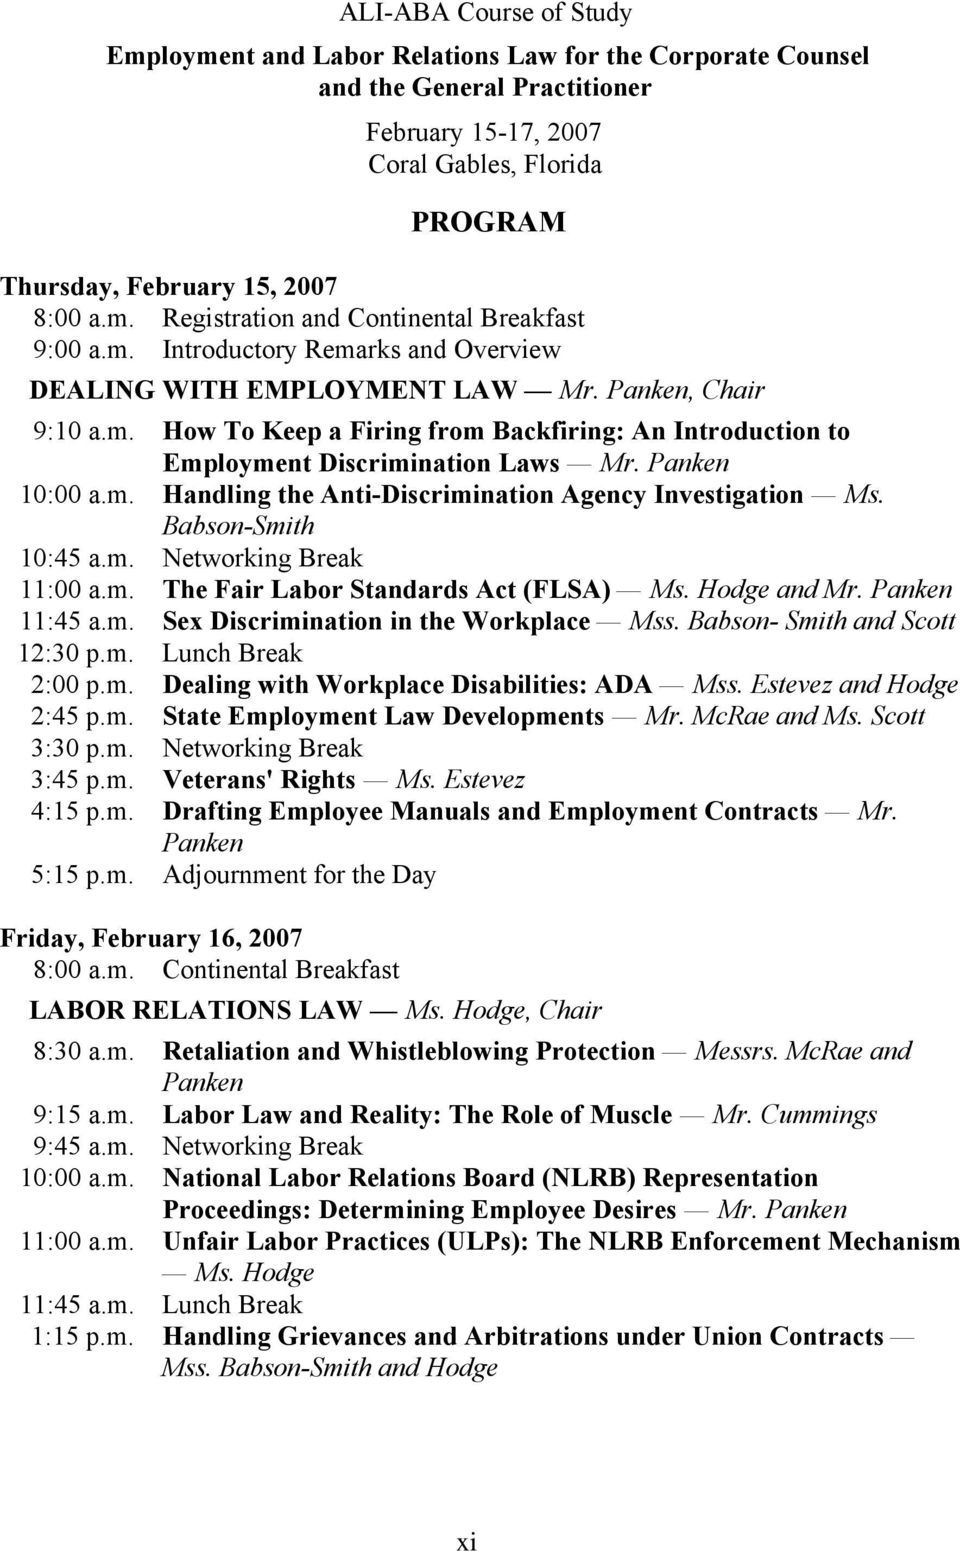 Panken 10:00 a.m. Handling the Anti-Discrimination Agency Investigation Ms. Babson-Smith 10:45 a.m. Networking Break 11:00 a.m. The Fair Labor Standards Act (FLSA) Ms. Hodge and Mr. Panken 11:45 a.m. Sex Discrimination in the Workplace Mss.